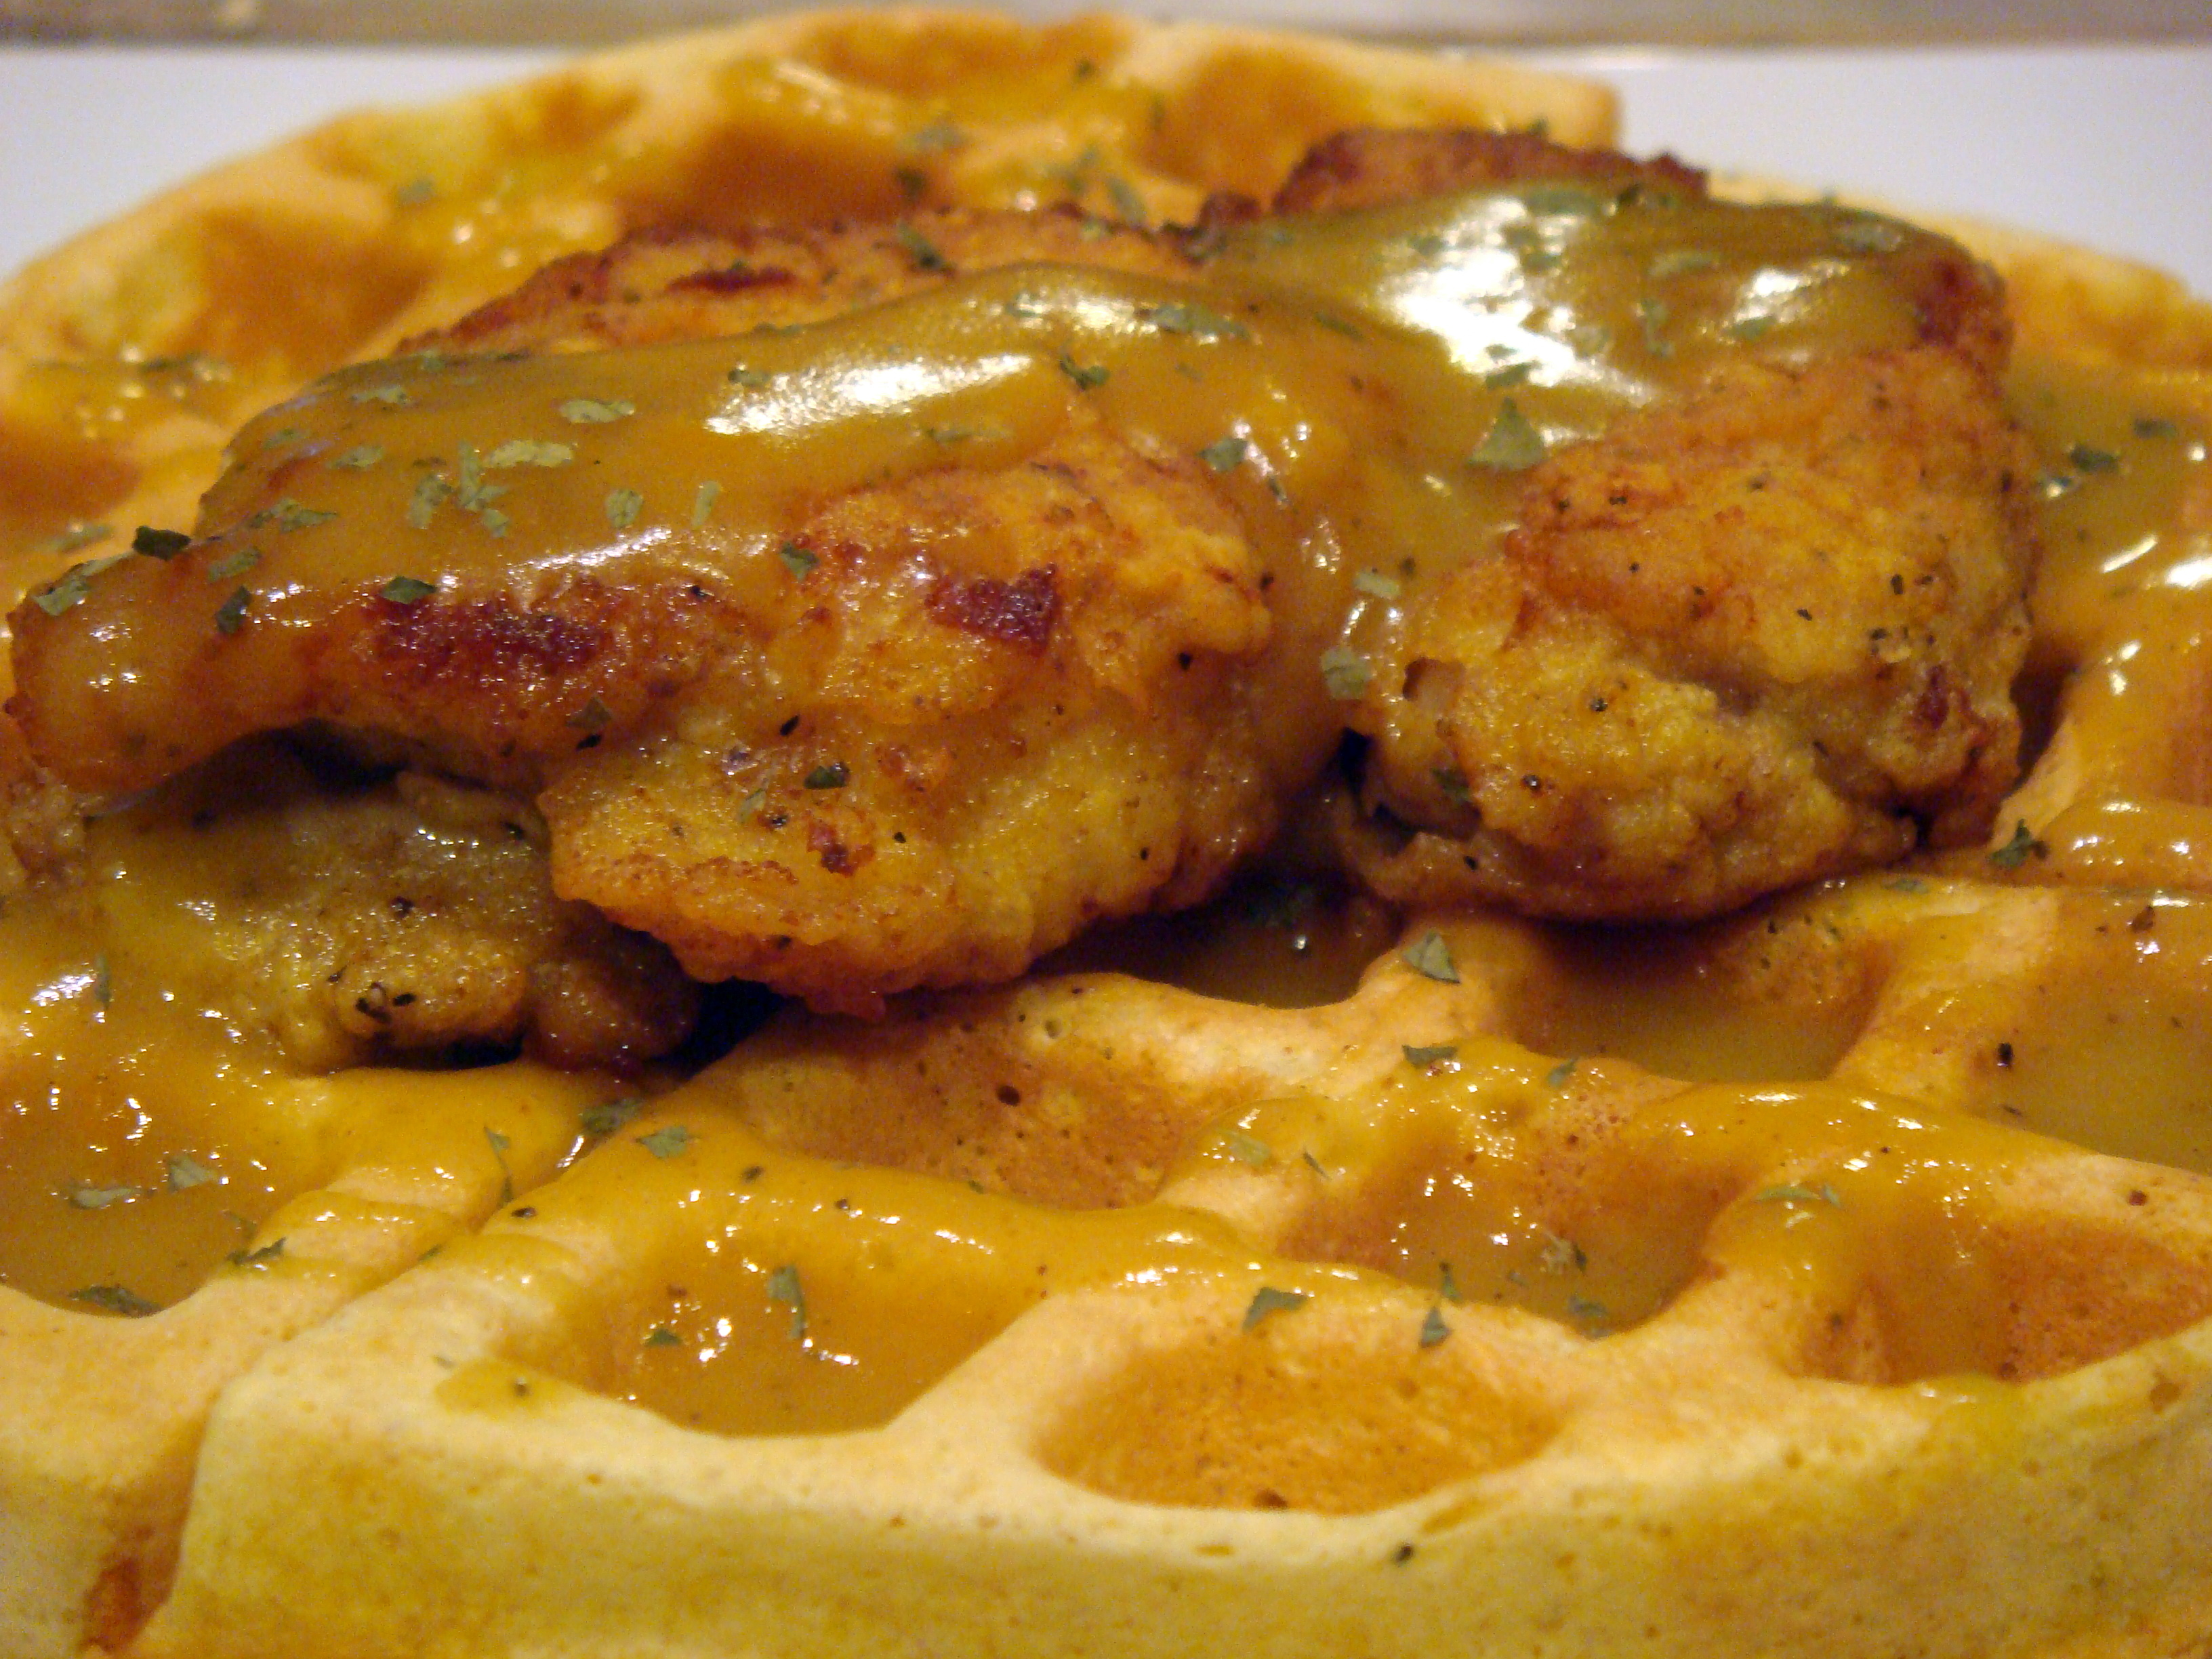 chicken and waffles | 43north/89west